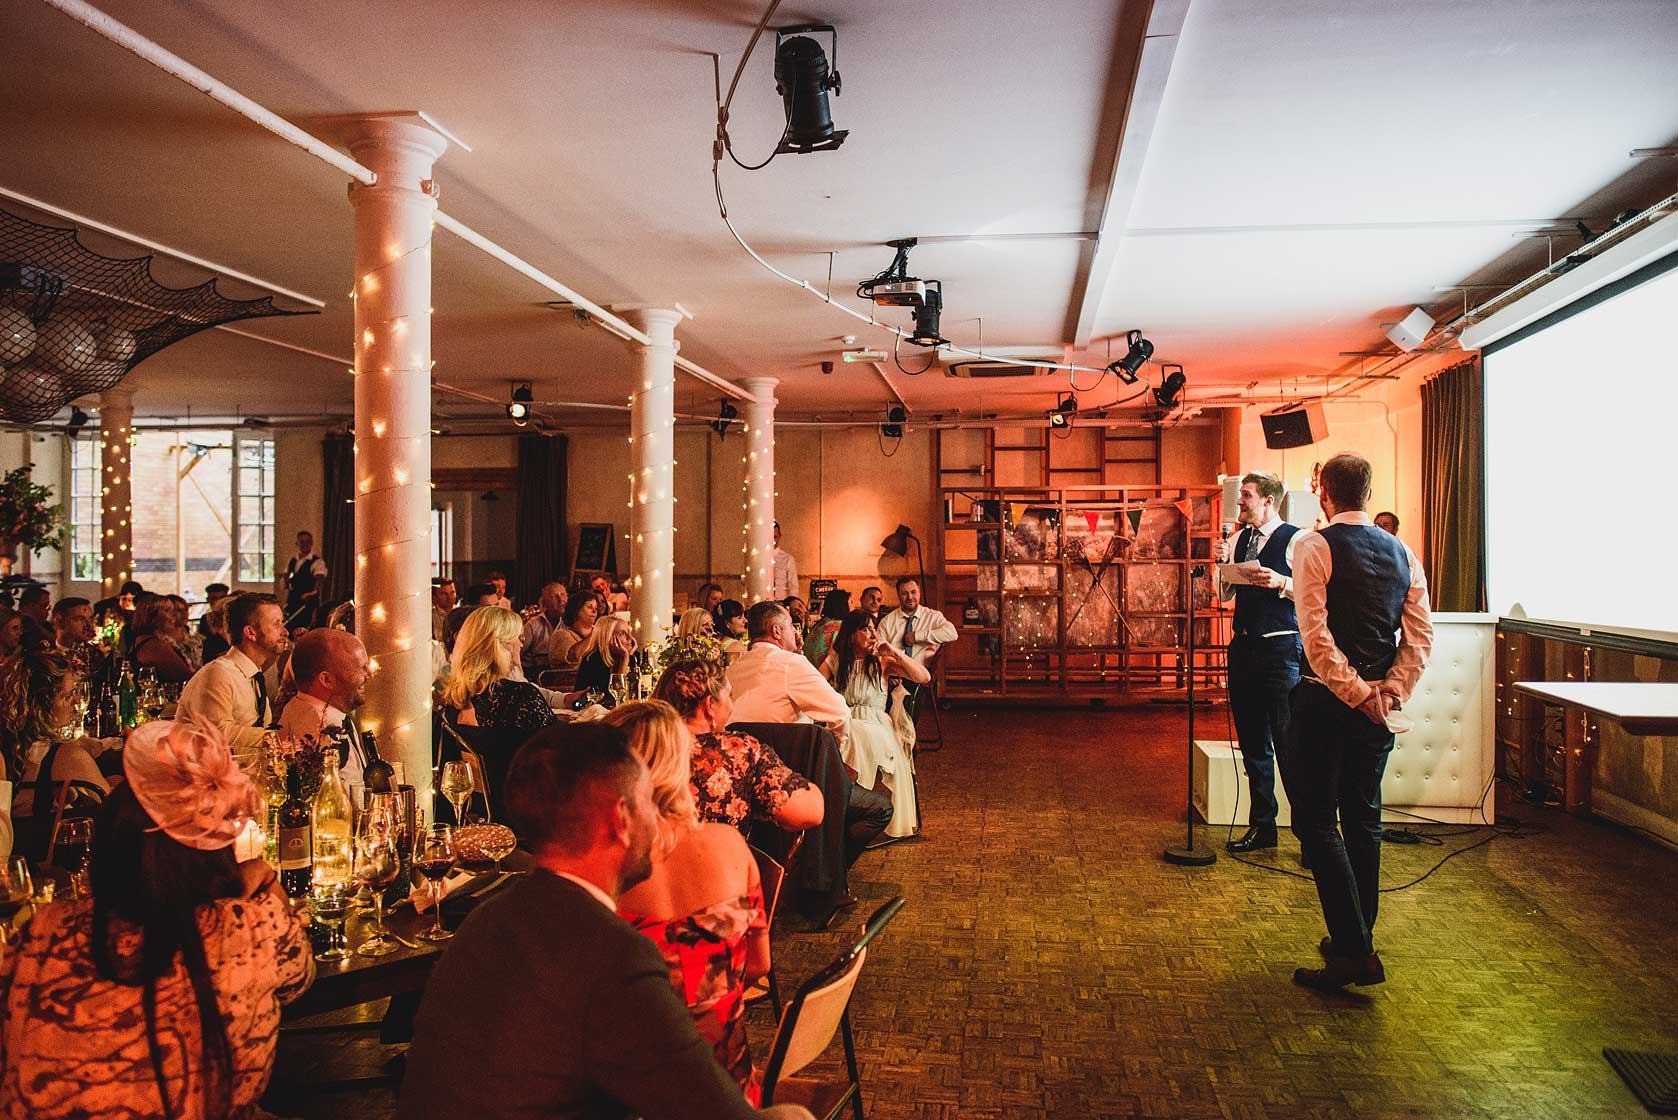 Reportage Wedding Photography at Tanner Warehouse